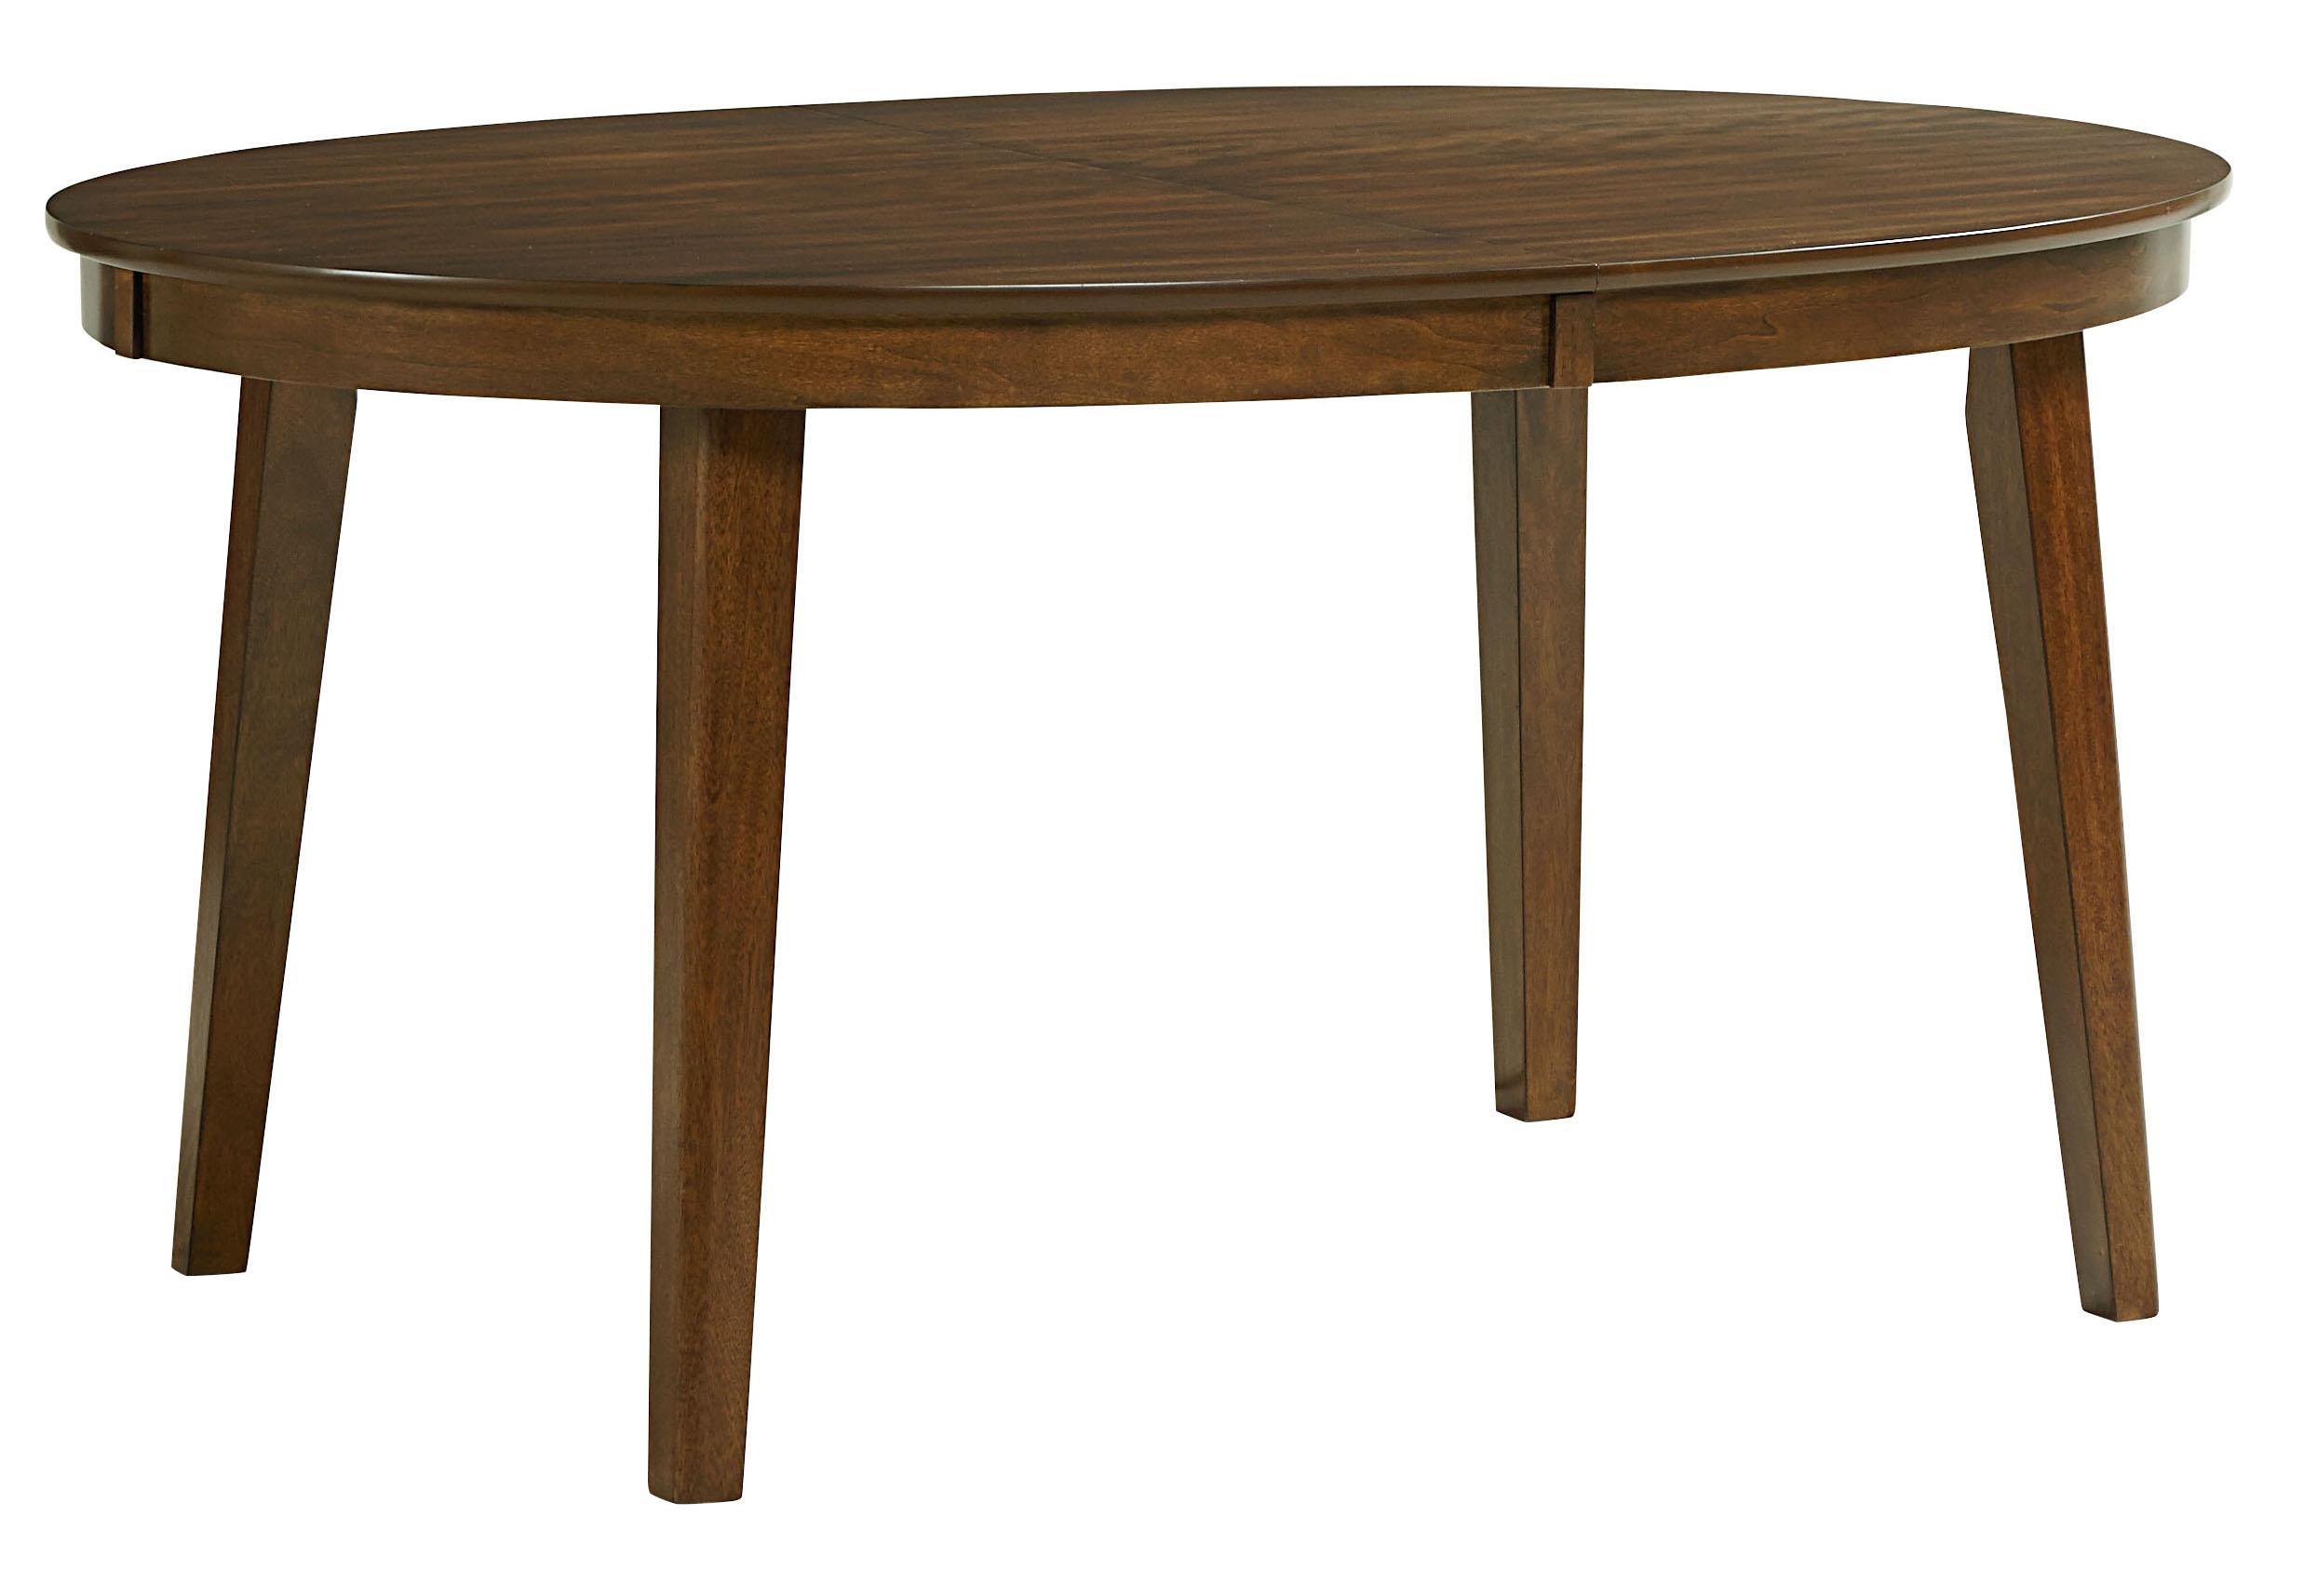 "Standard Furniture Roxbury Oval Table with 18"" Leaf - Item Number: 16201"